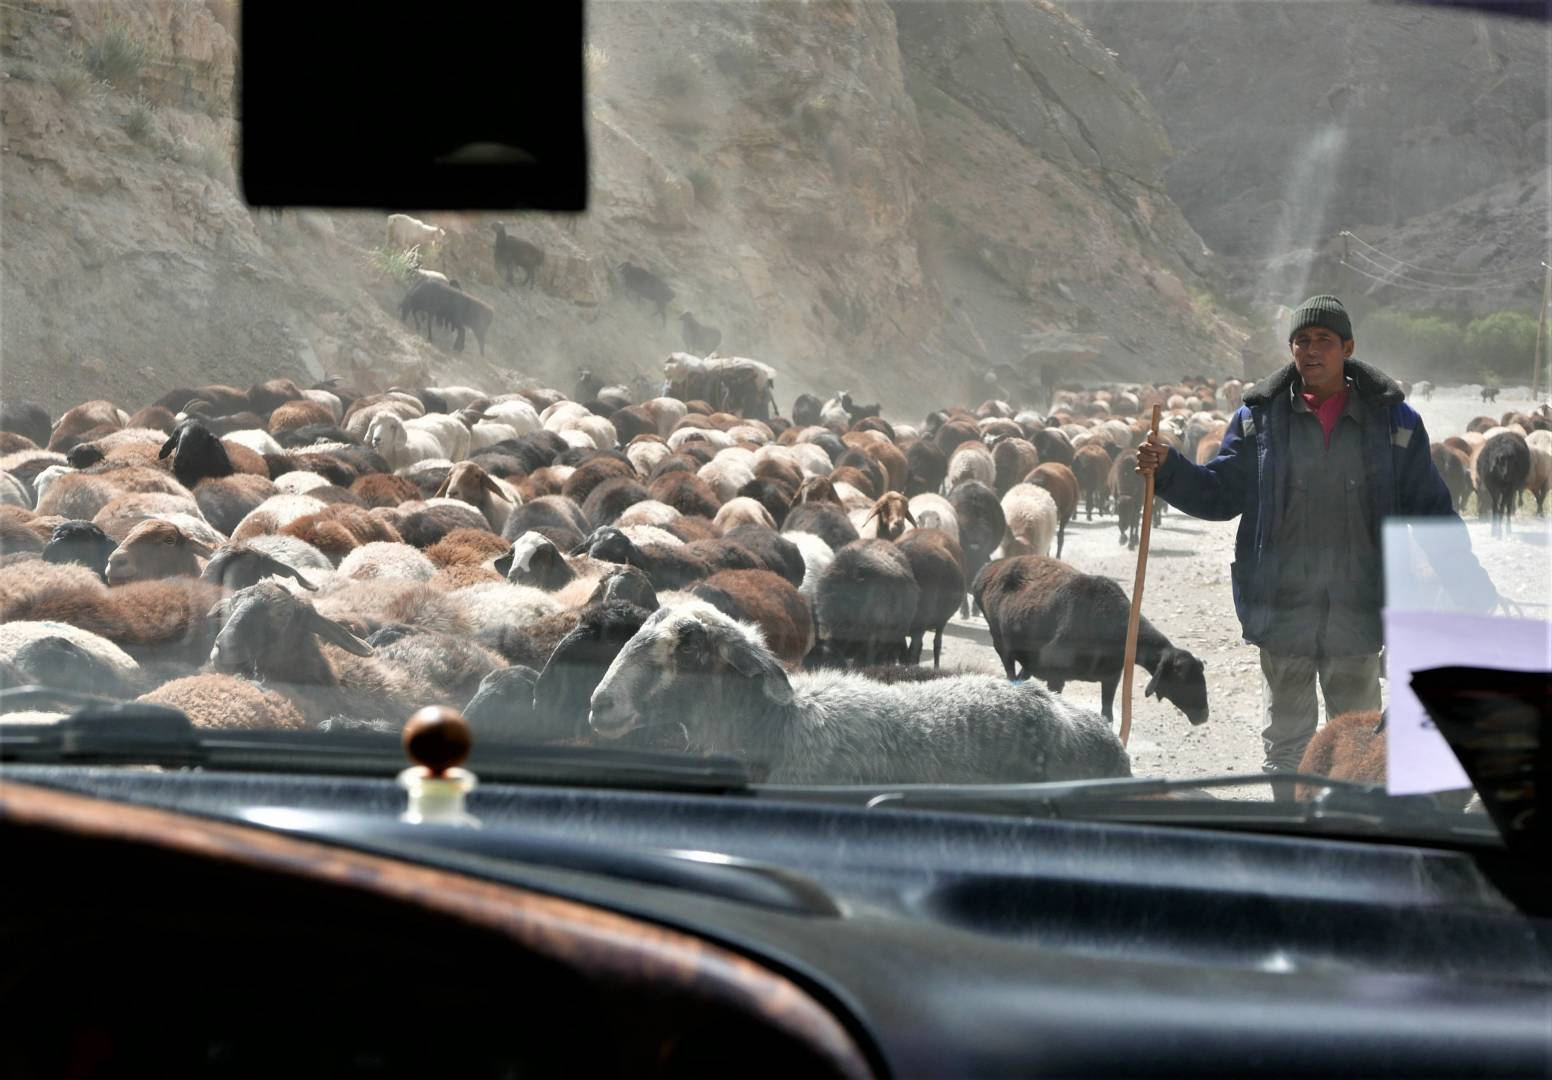 Local goatherder, through the front window, an old road in Tajikistan